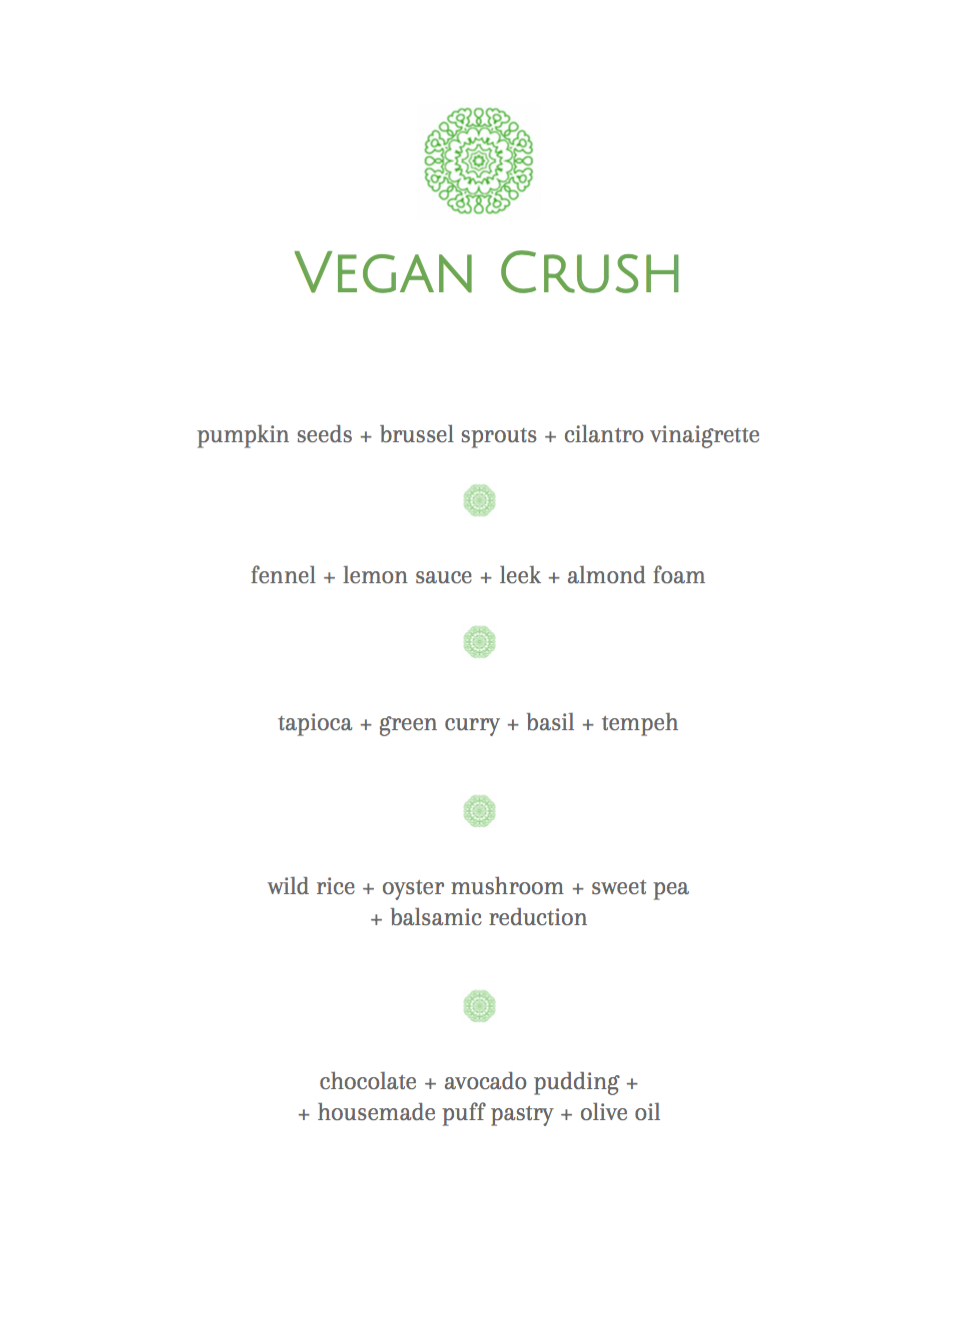 vegan crush 5 courses sample menu